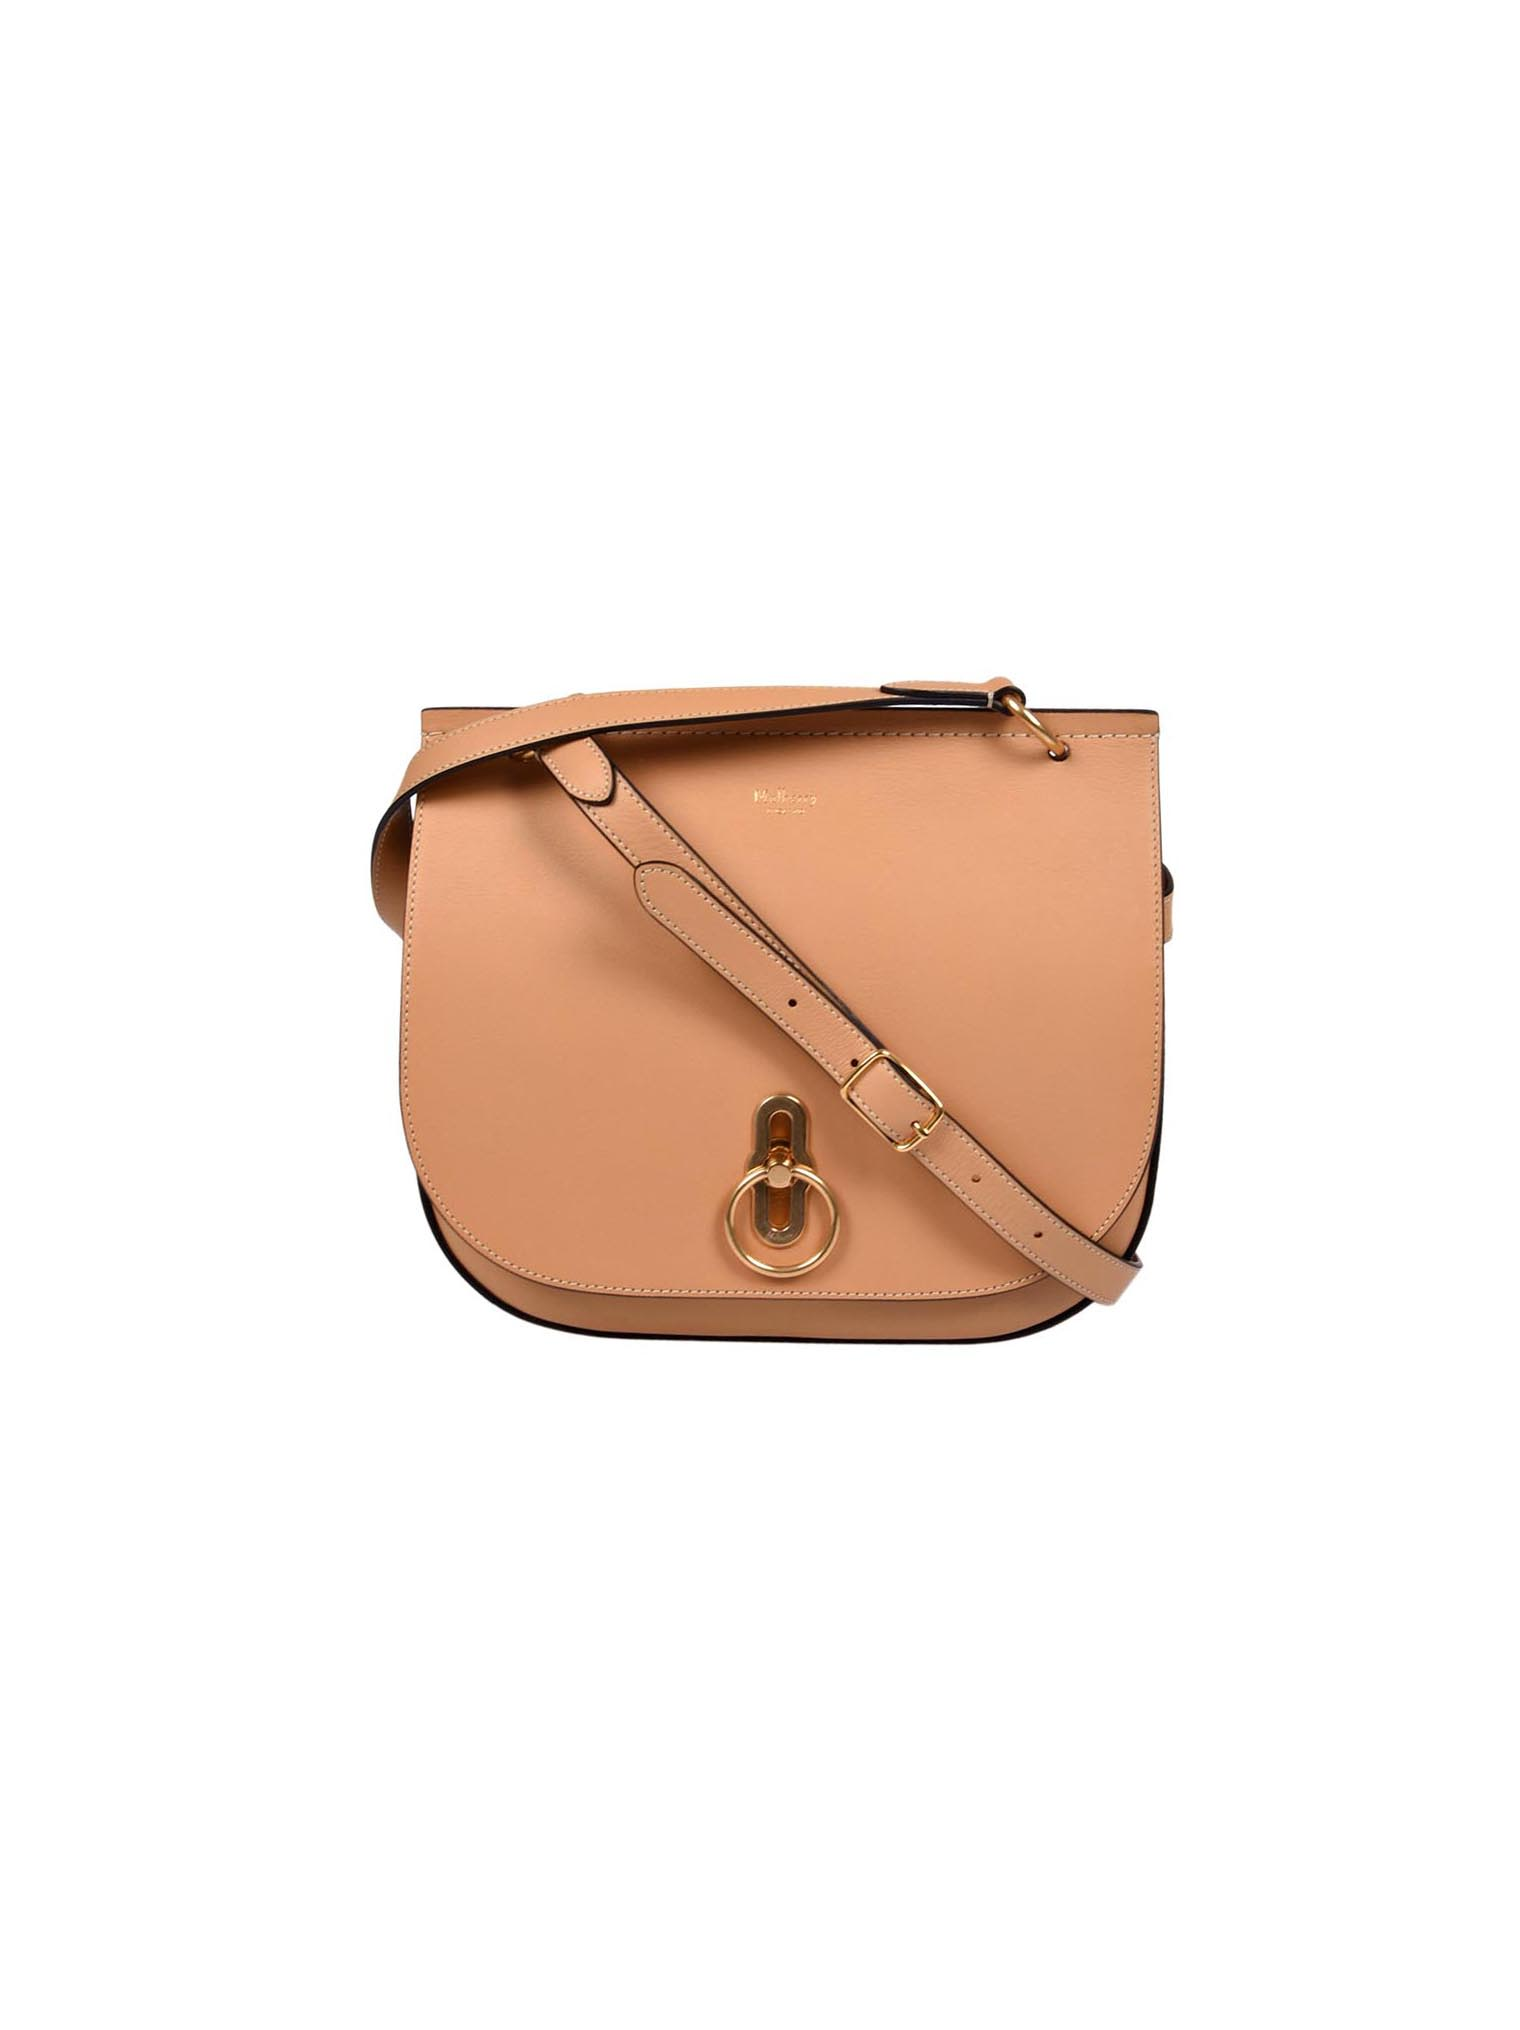 Mulberry Amberly Satchel Bag